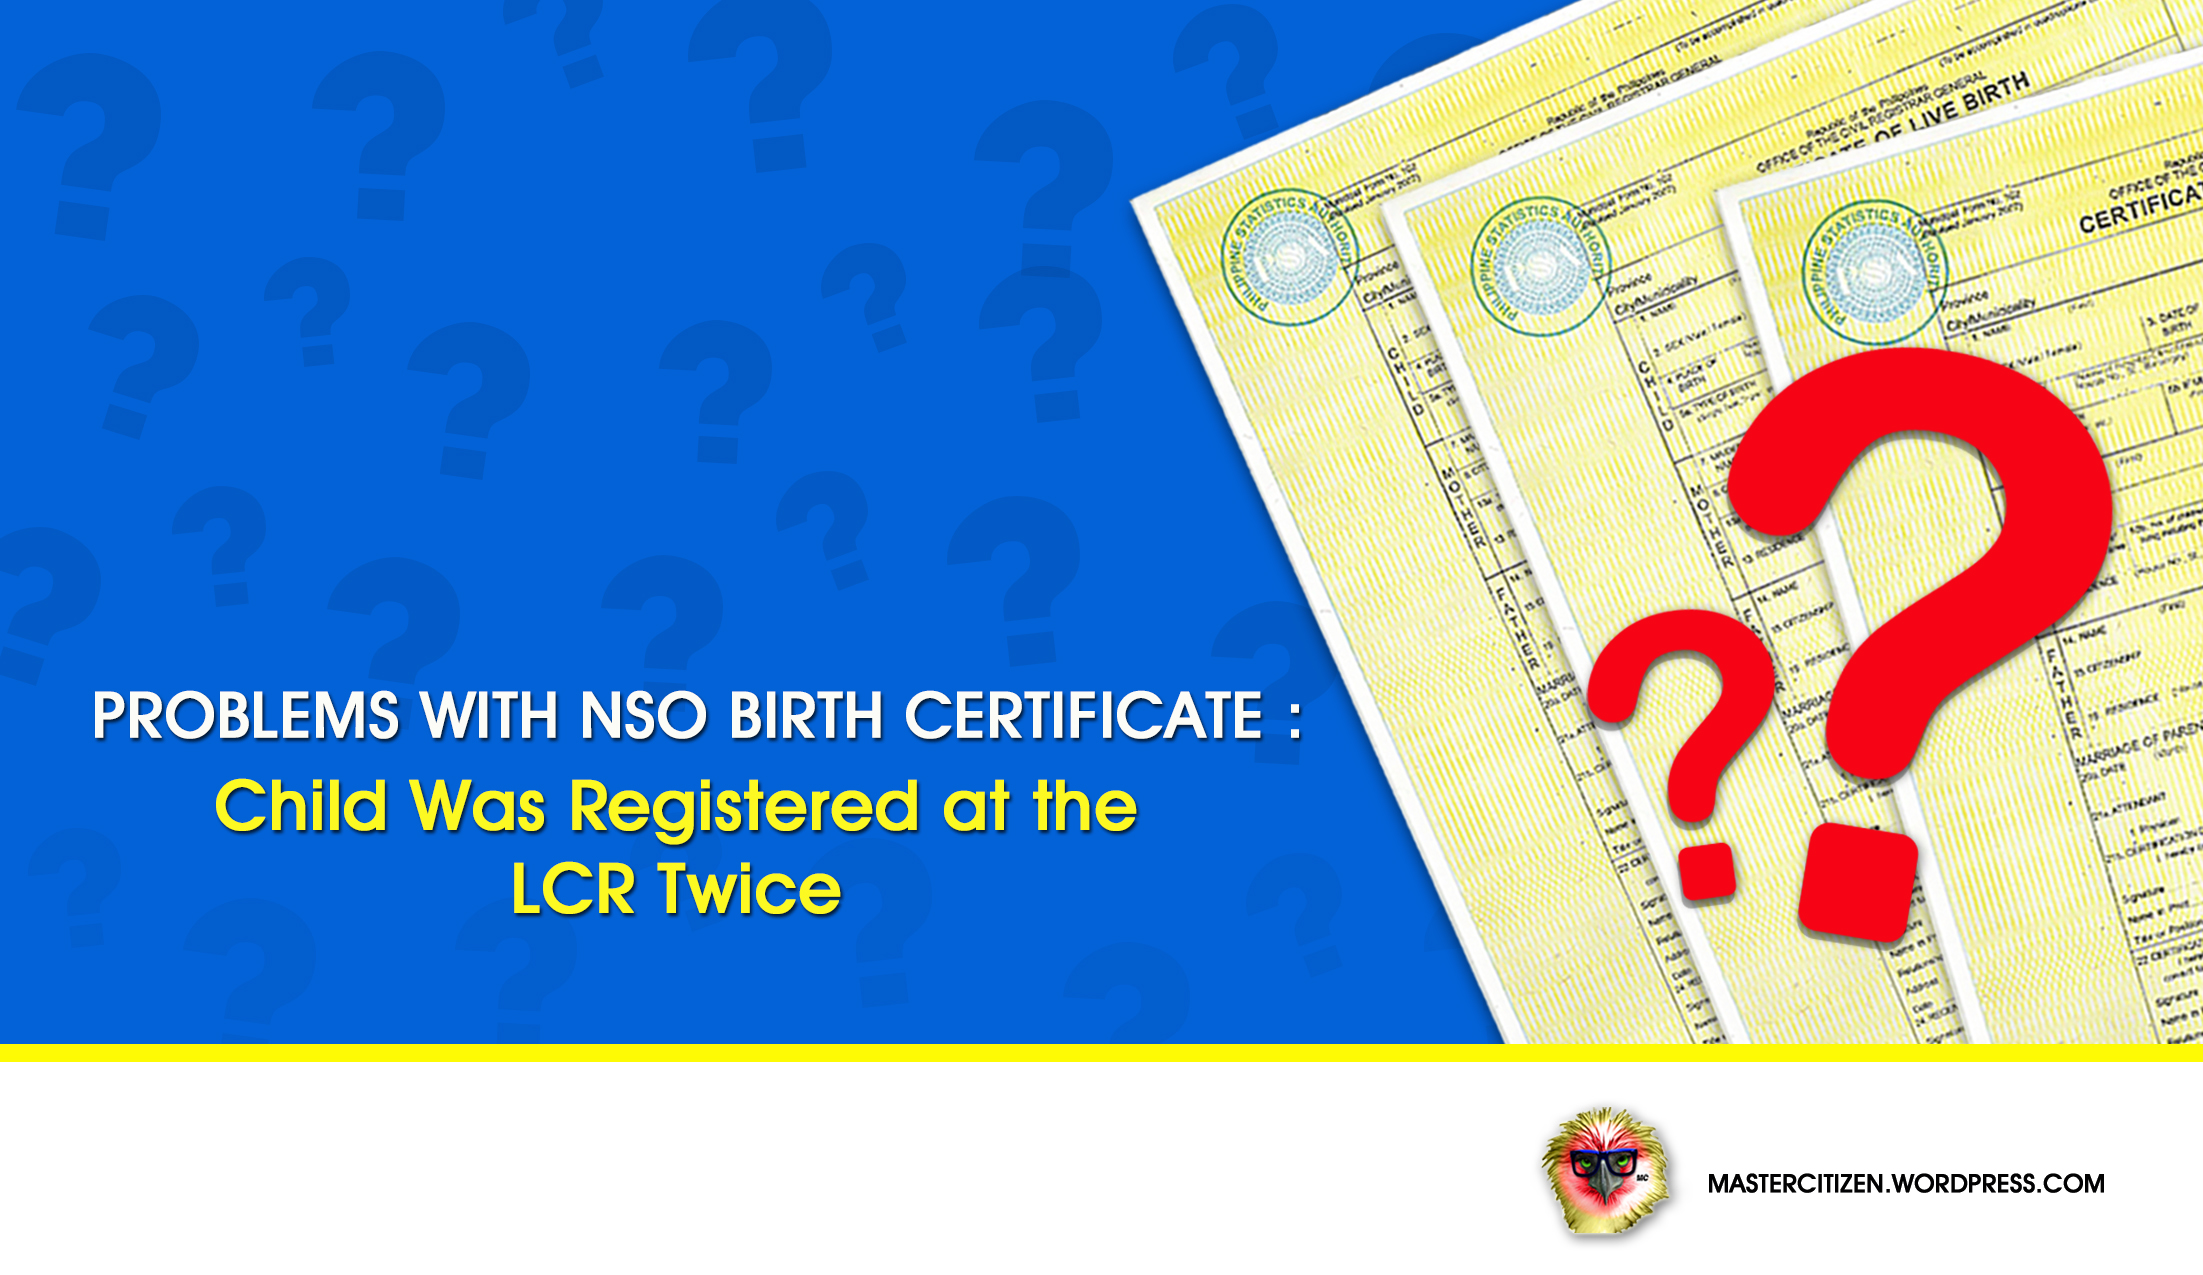 Problems With Nso Birth Certificate Child Was Registered At The